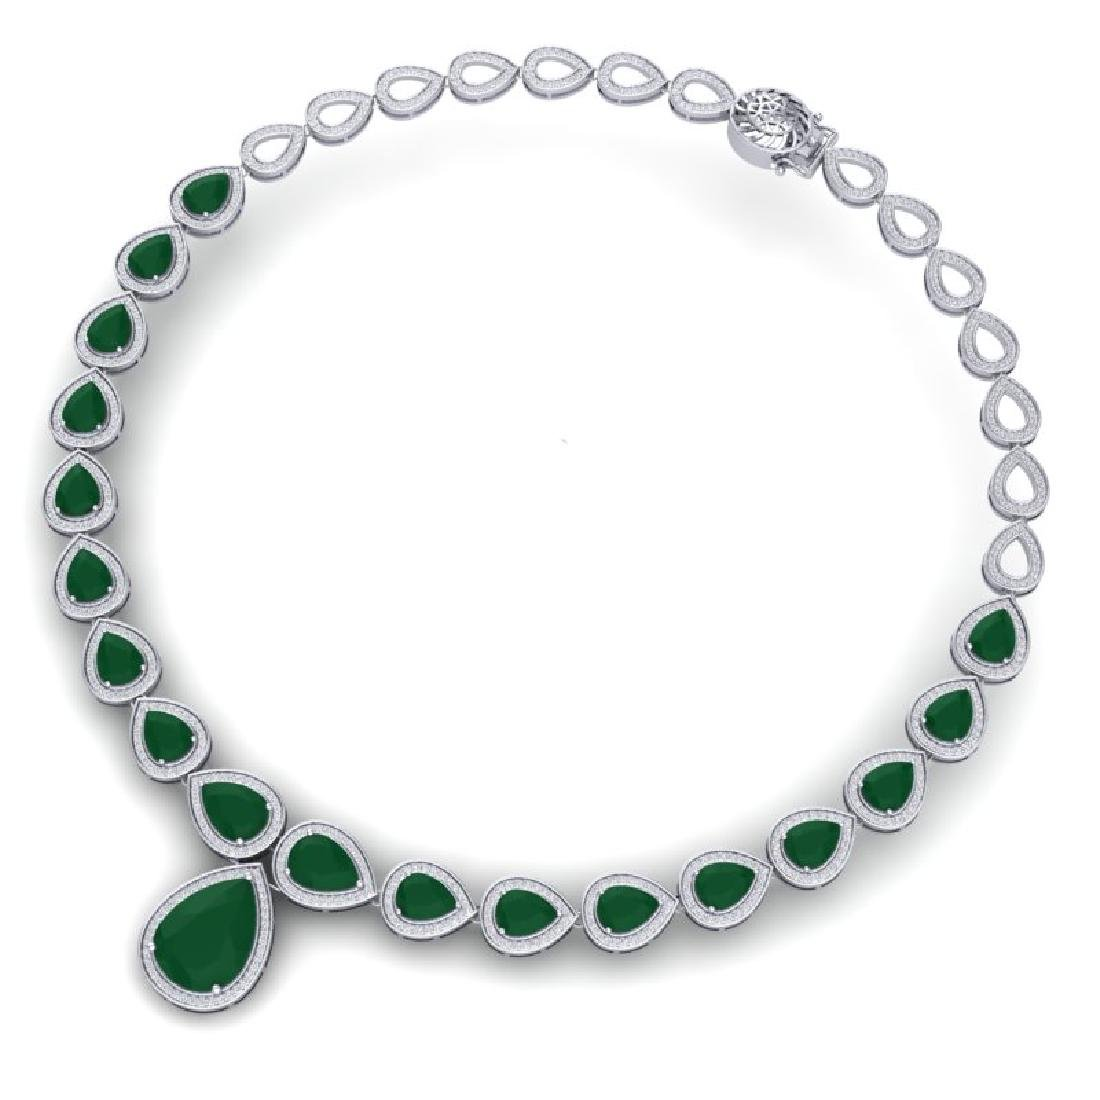 51.41 CTW Royalty Emerald & VS Diamond Necklace 18K - 3